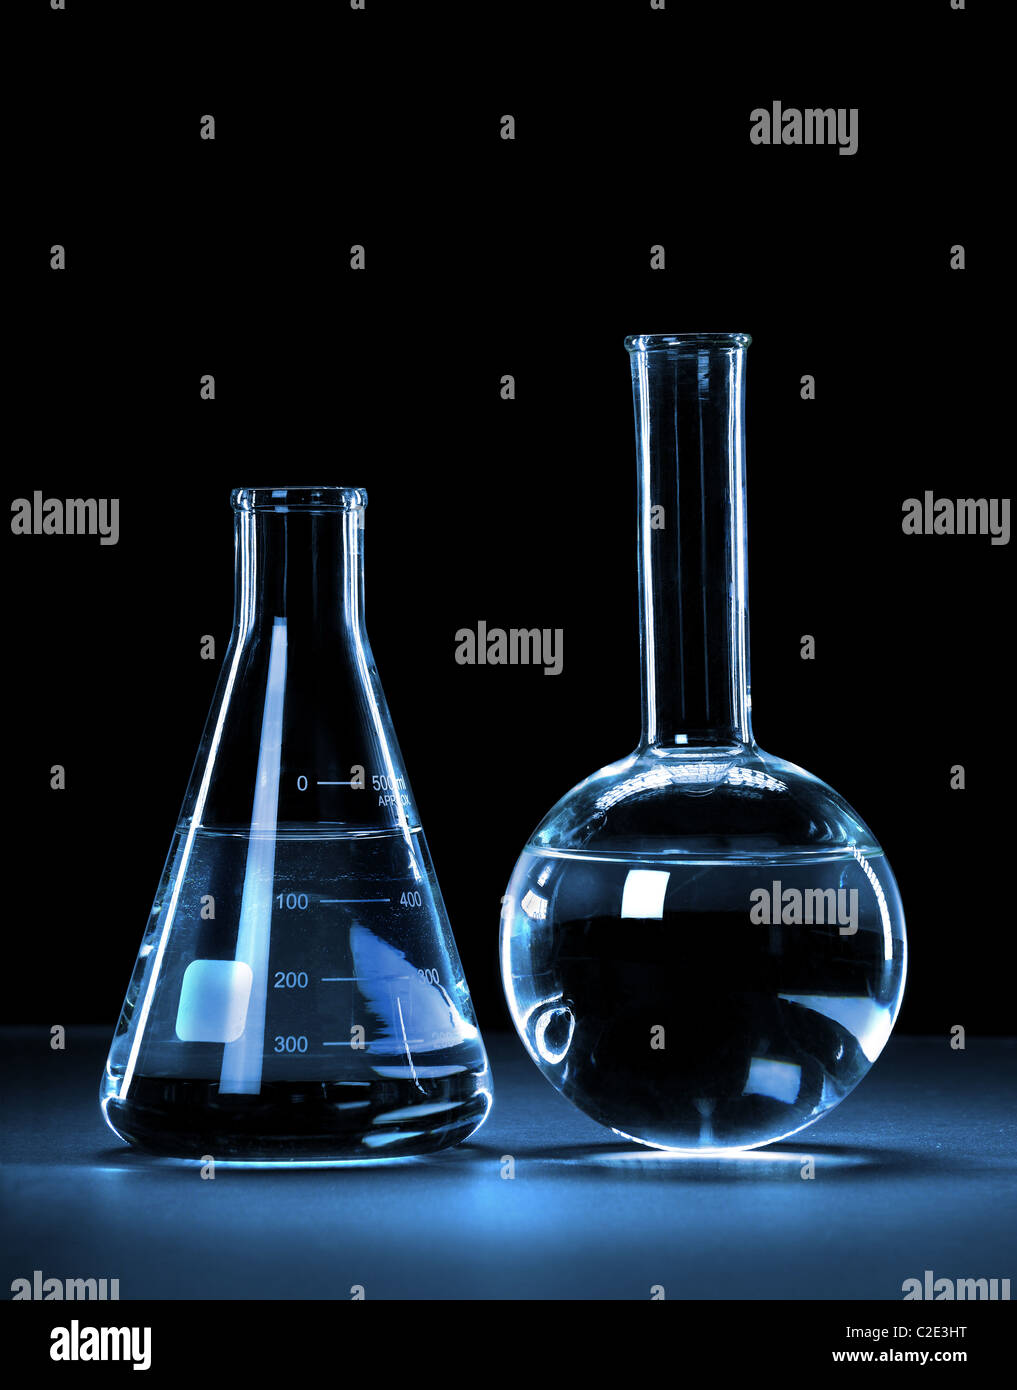 Laboratory glassware with blue light over dark background - With Clipping Path - Stock Image